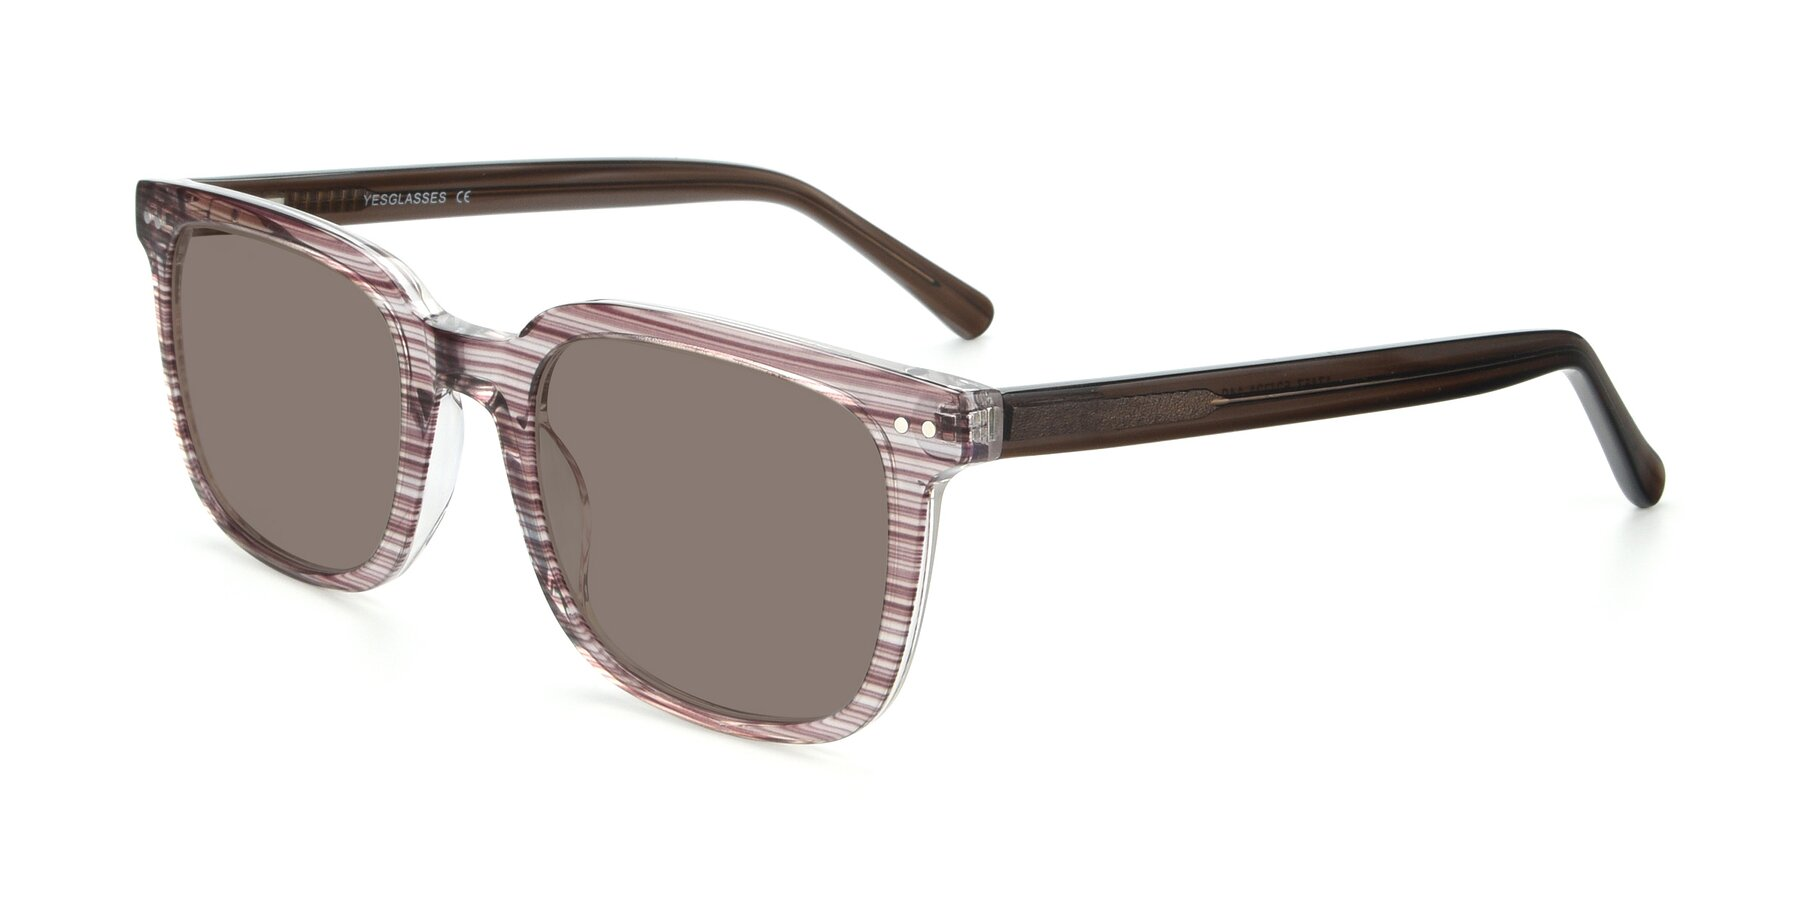 Angle of 17457 in Stripe Brown with Medium Brown Tinted Lenses